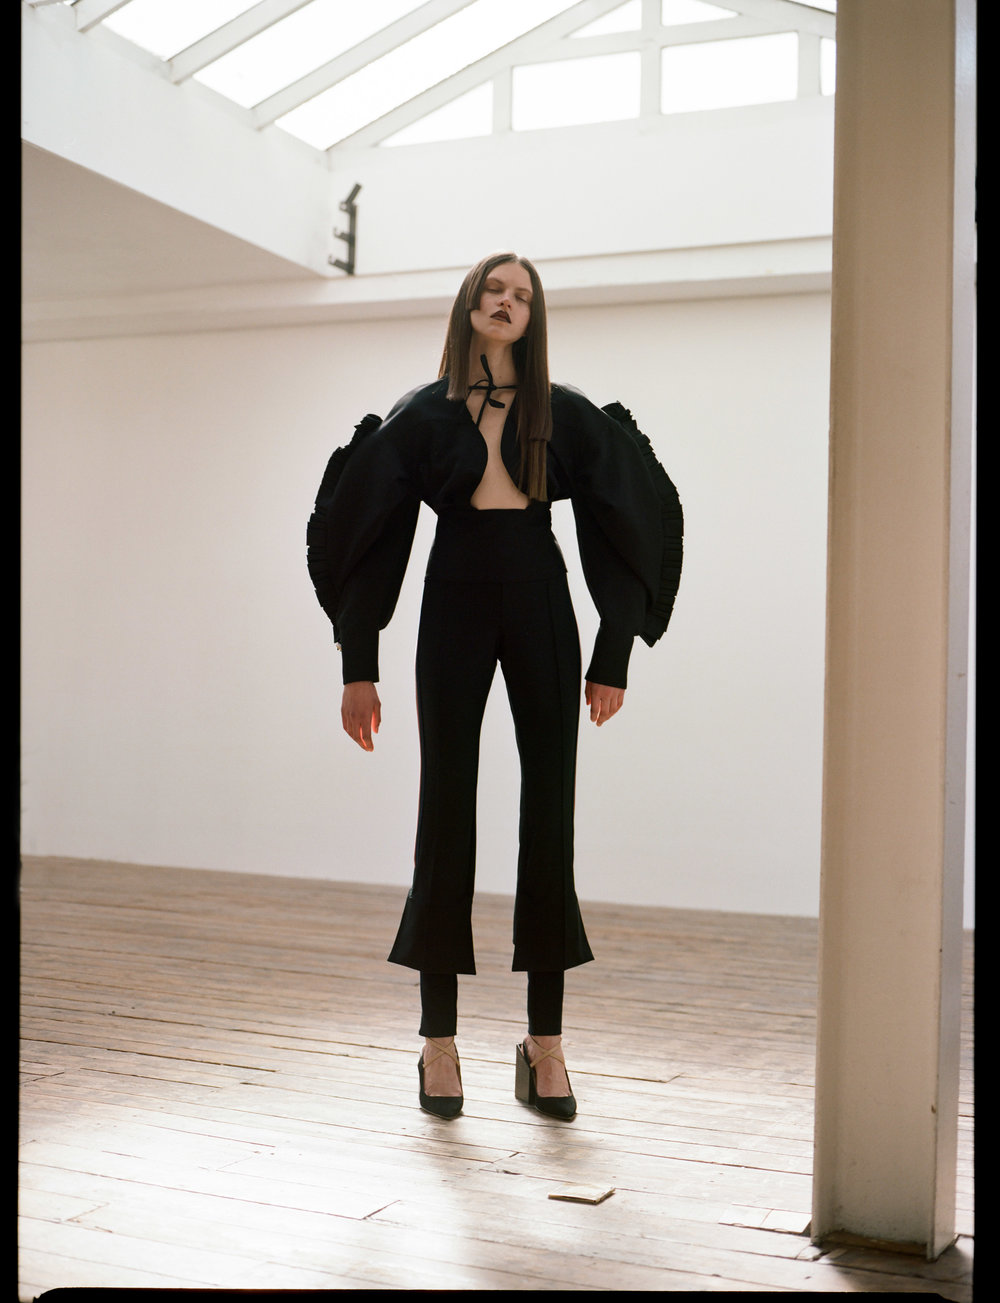 Blouse  Jacquemus    Trousers  TOGA Pulla    Shoes  Jacquemus